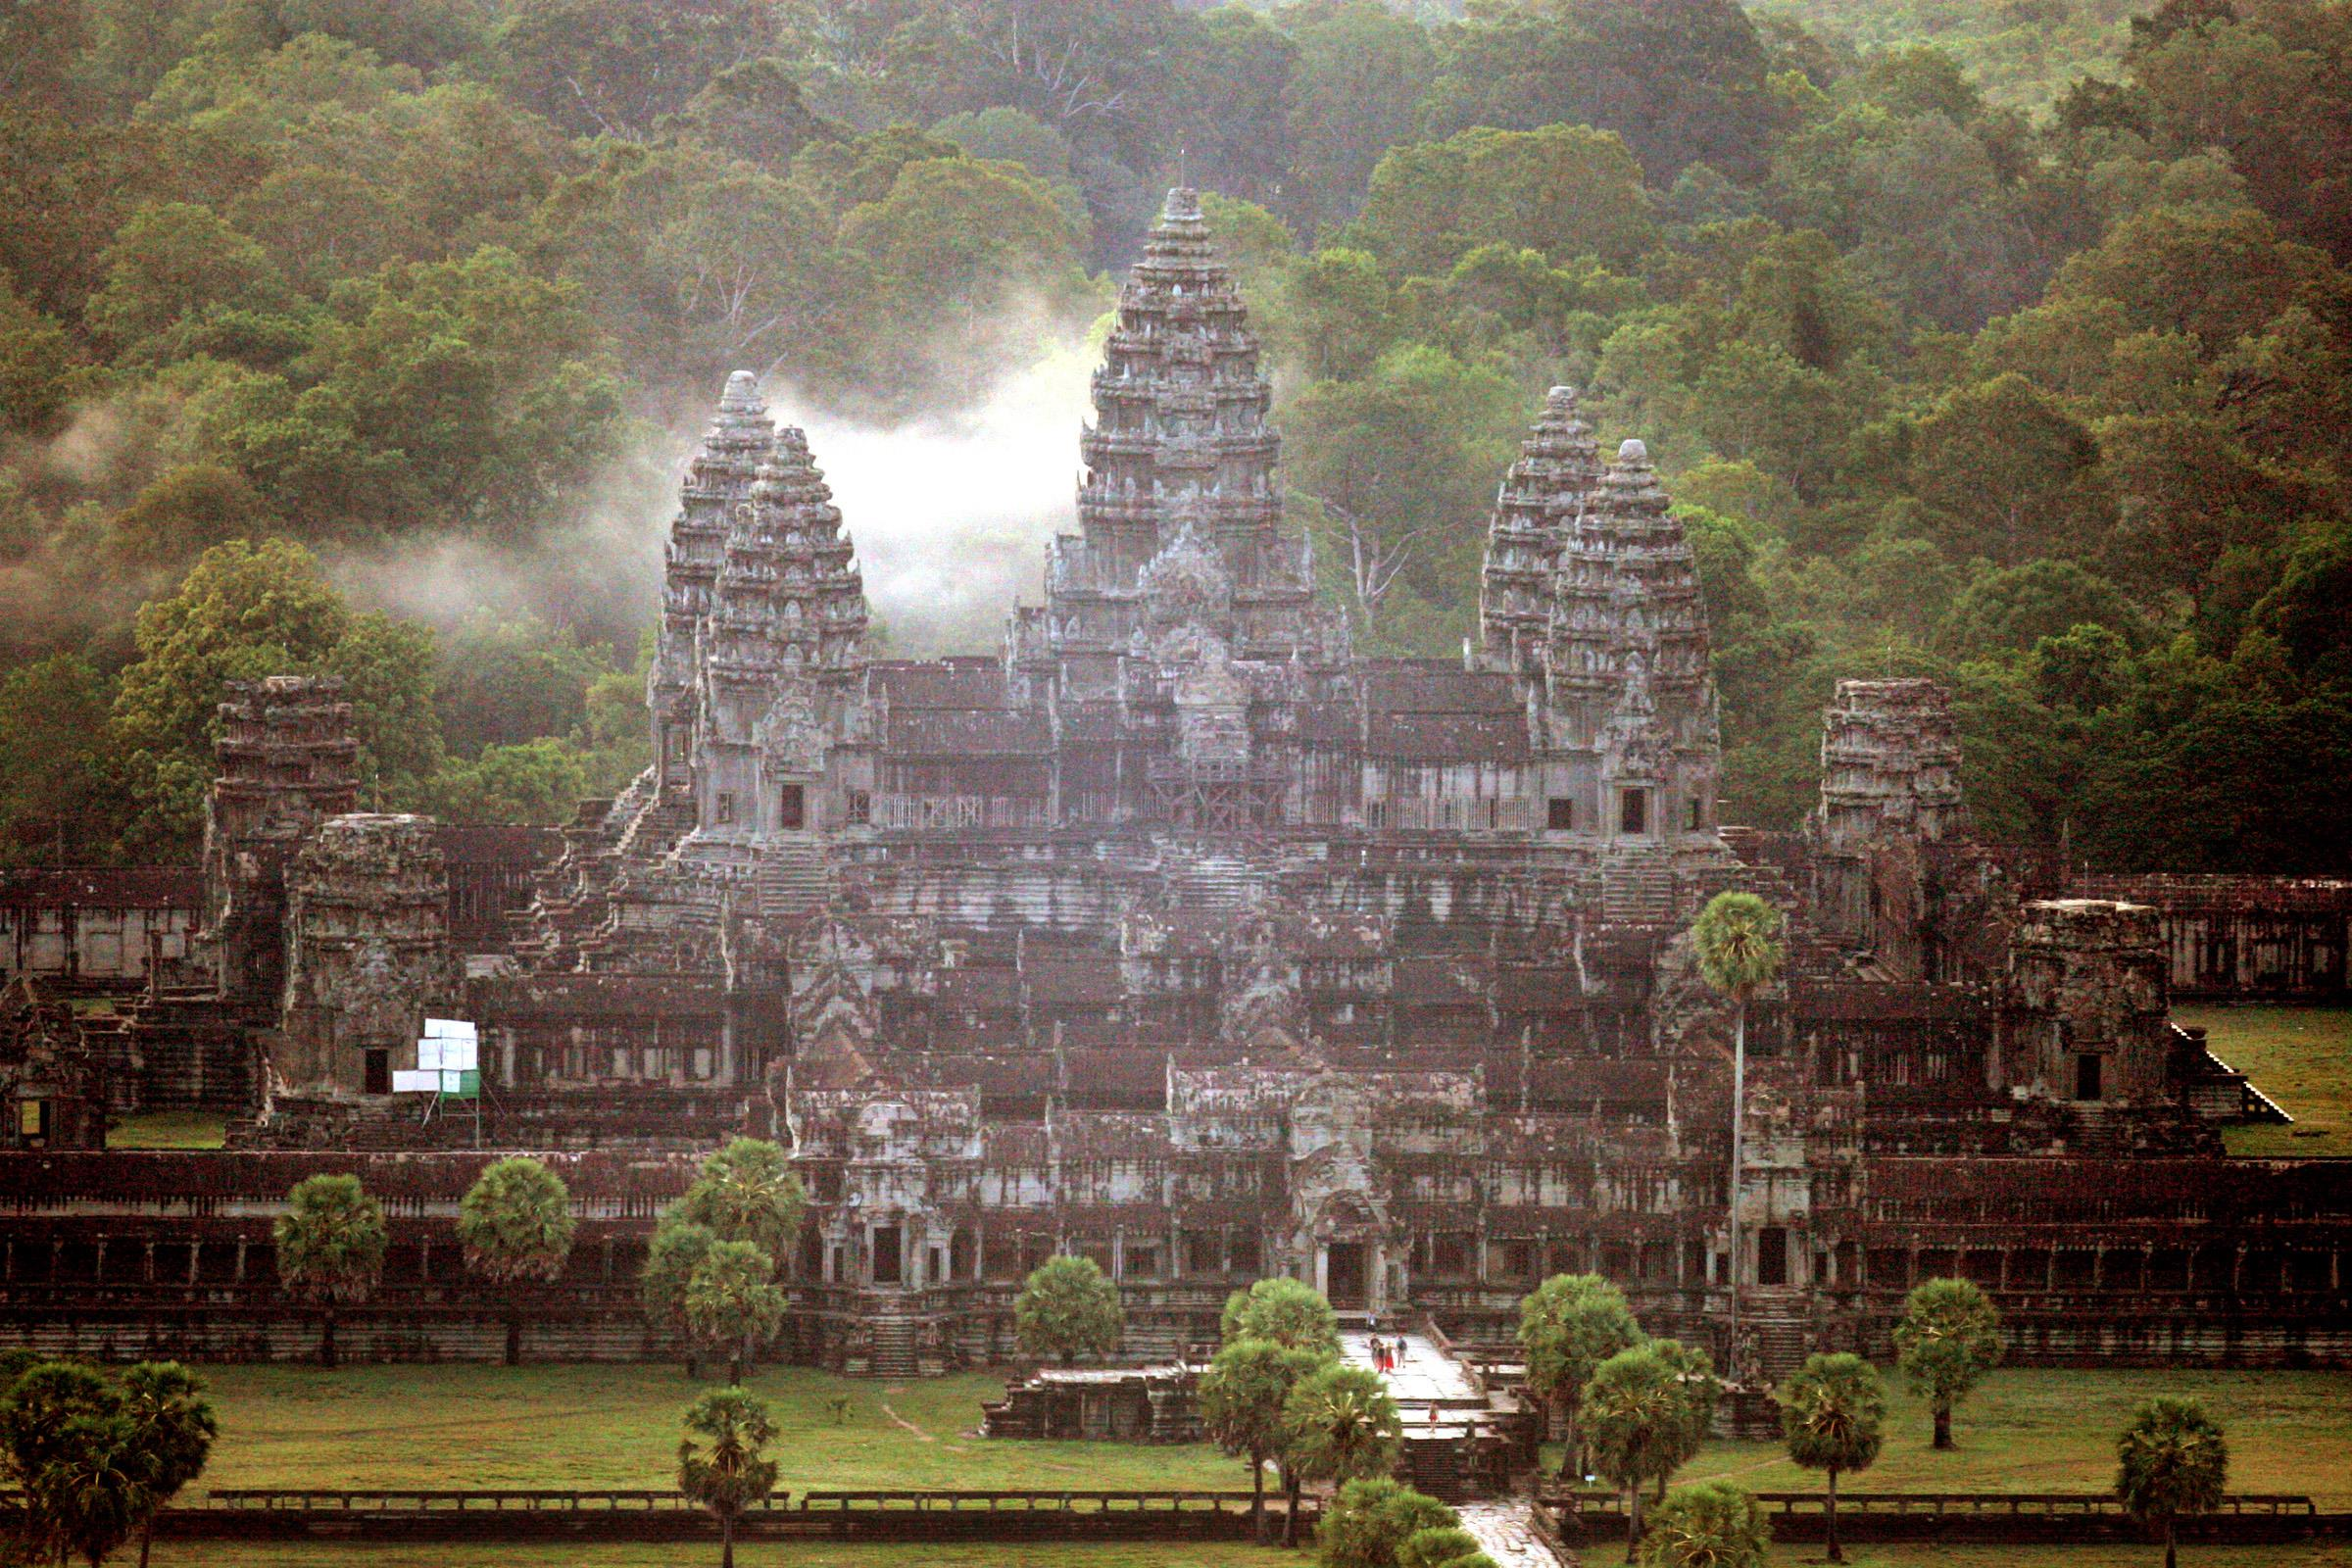 In cambodia toxic air threatens timeless ruins nbc news for E kitchen american cambodia